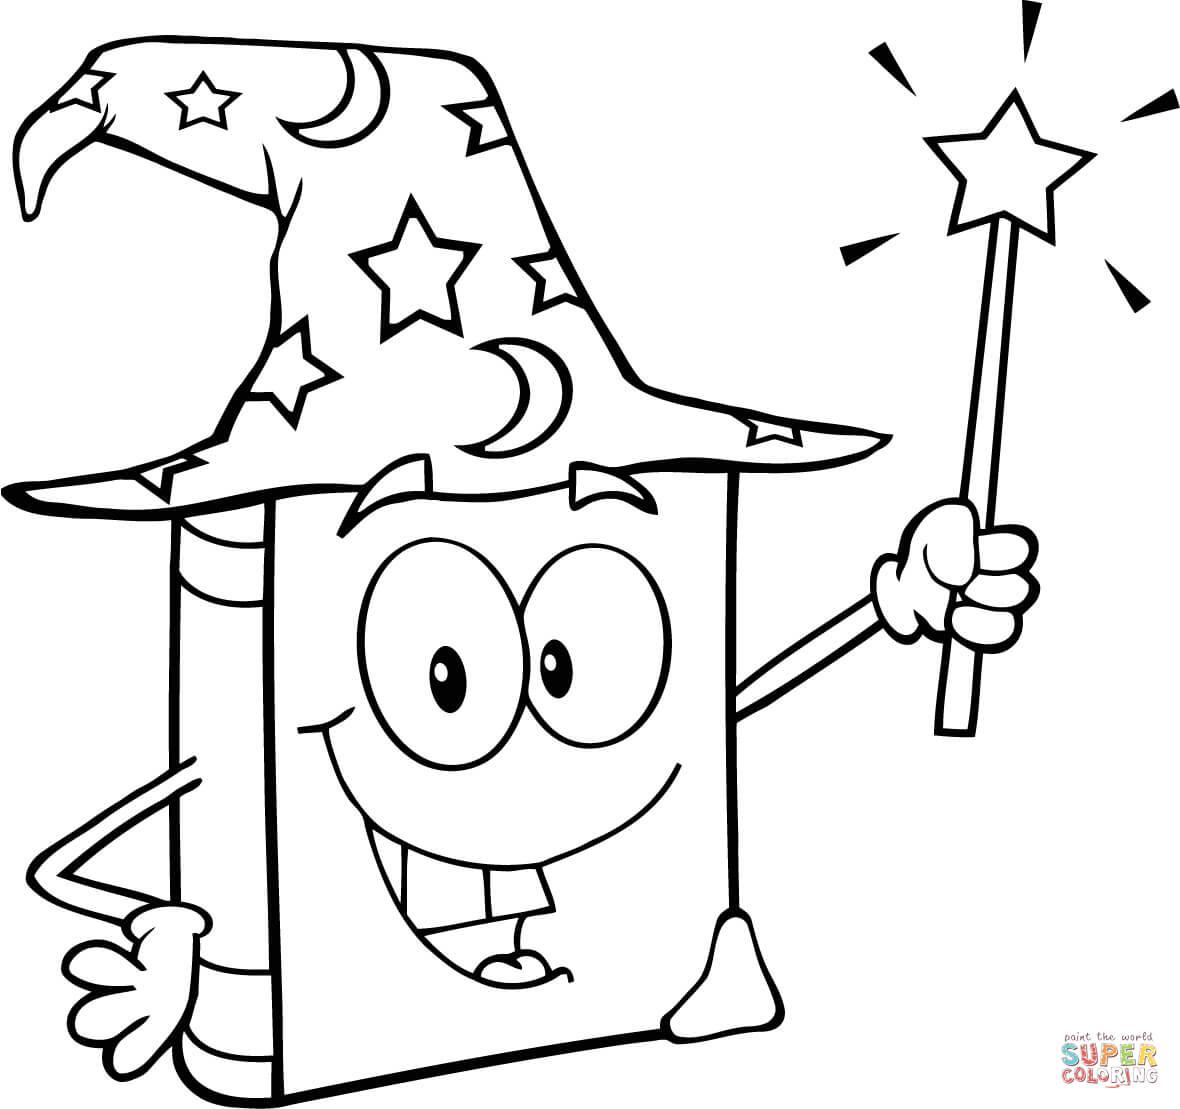 Wizard Book Holding A Magic Wand Coloring Page